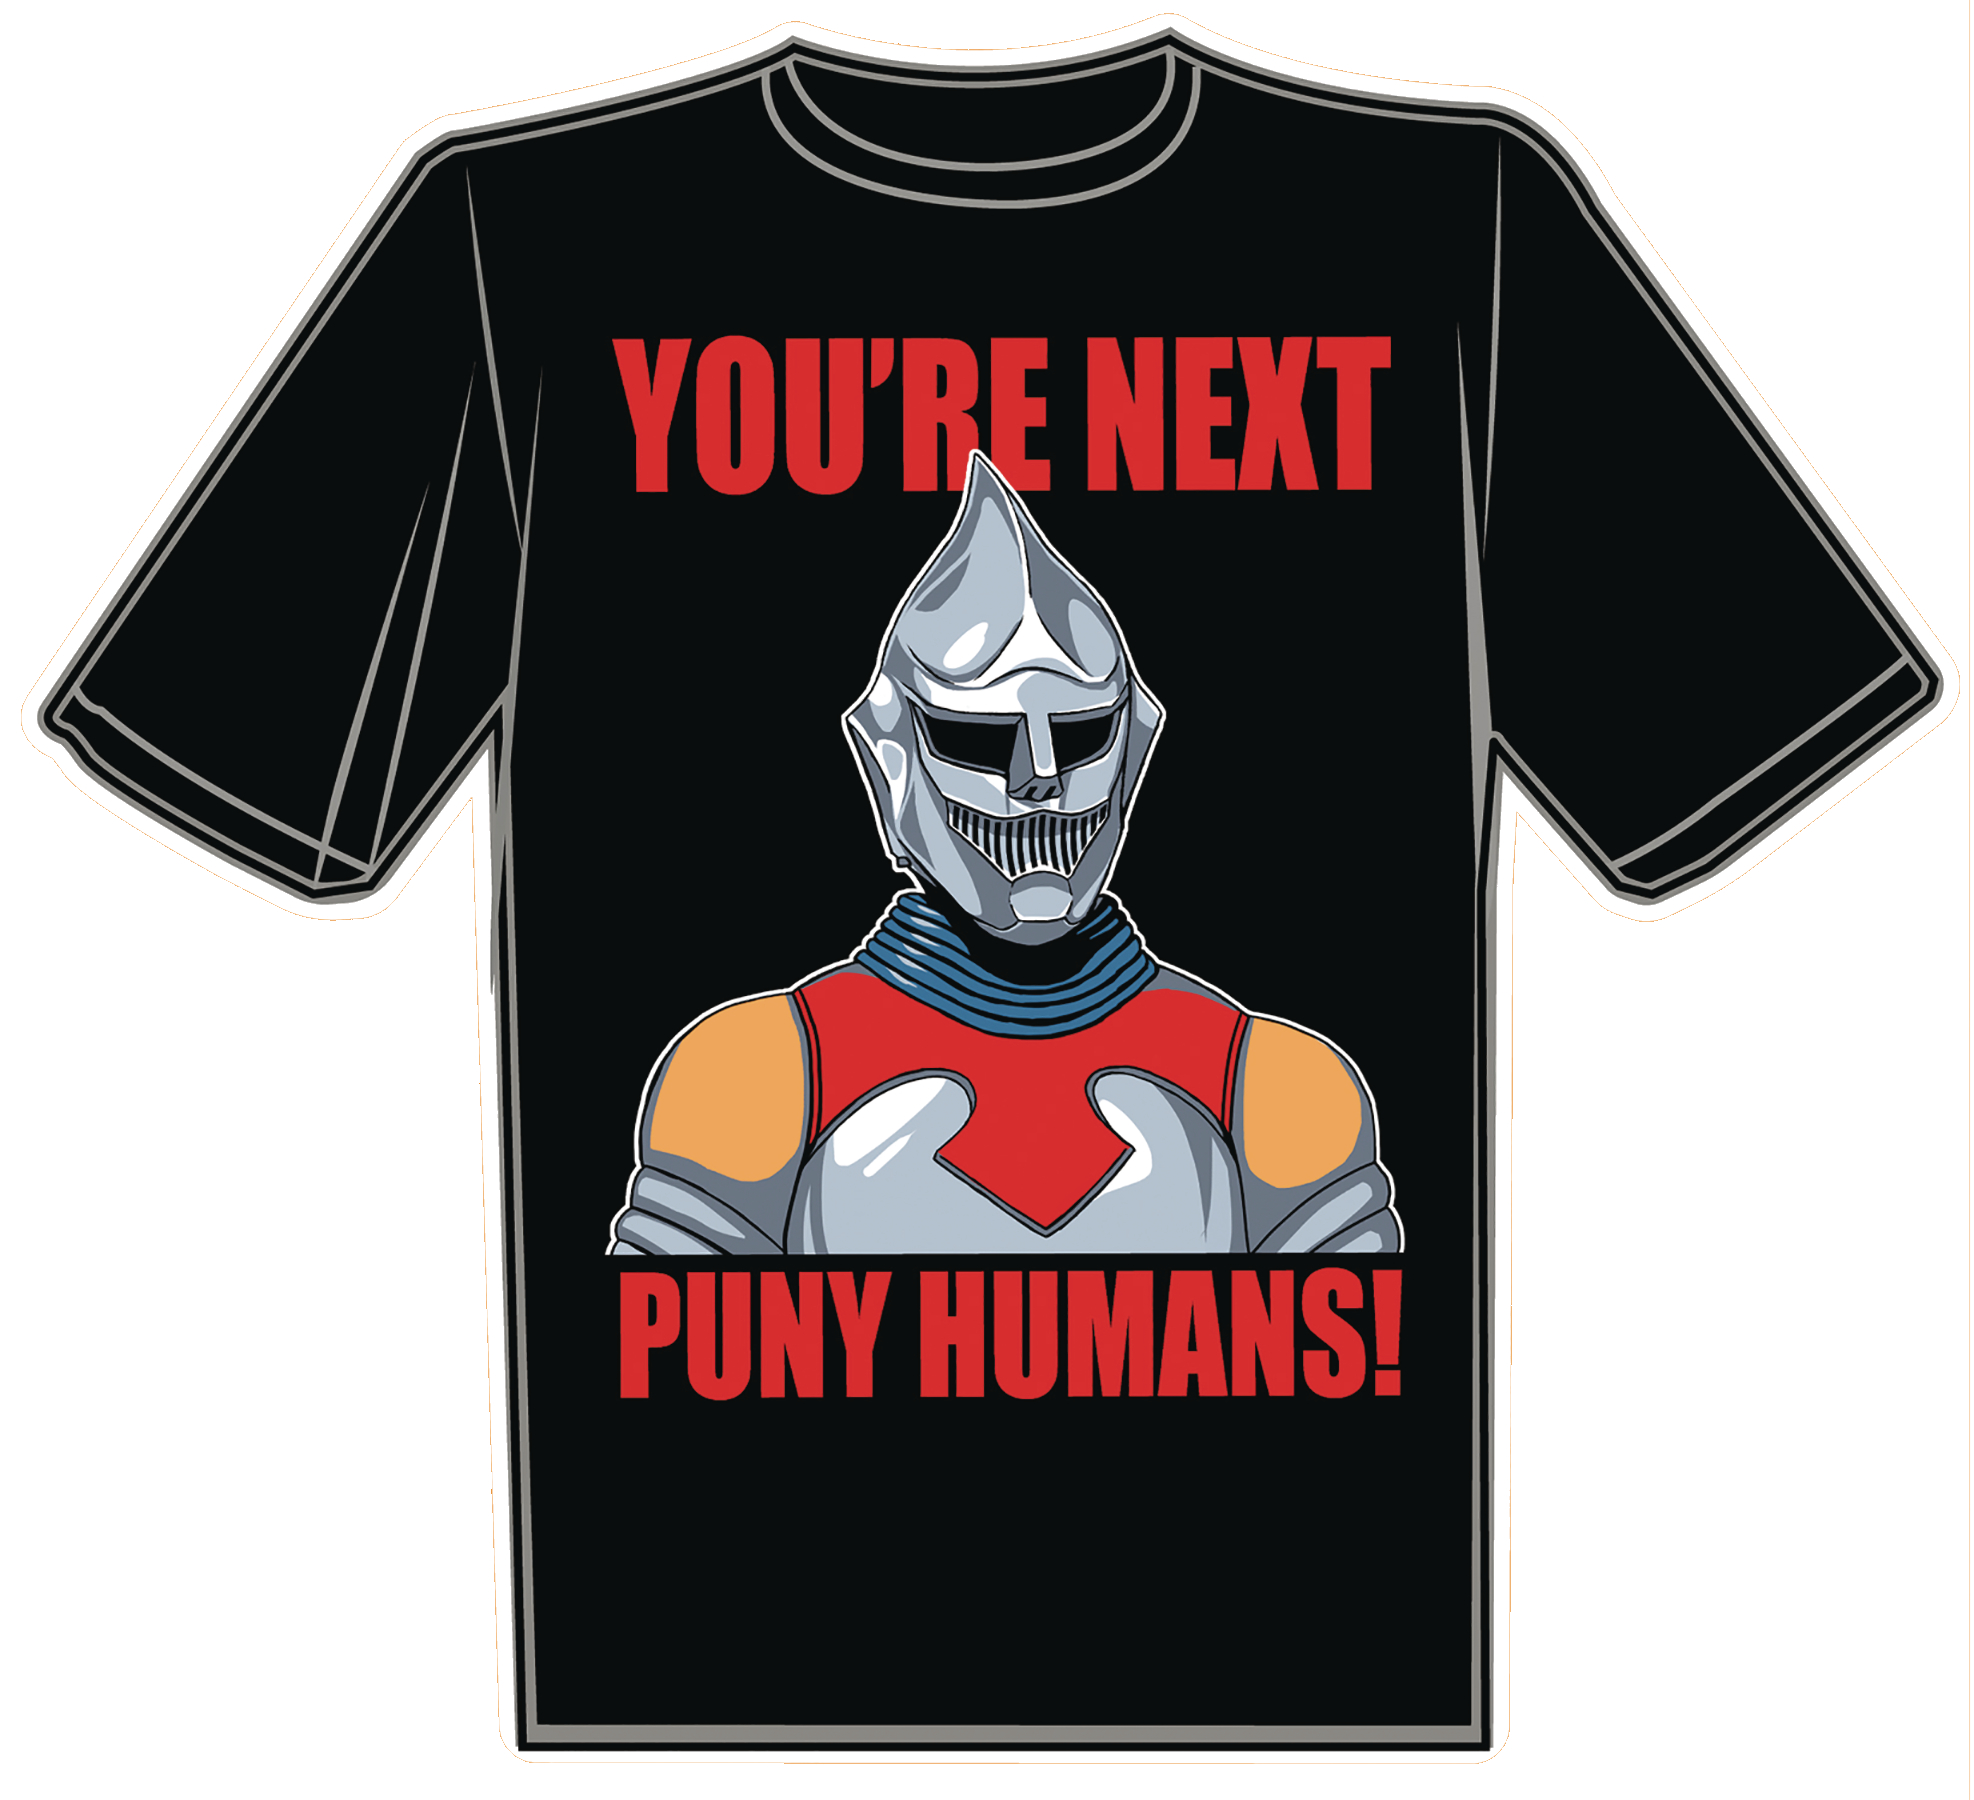 YOURE NEXT PUNY HUMANS T/S LG